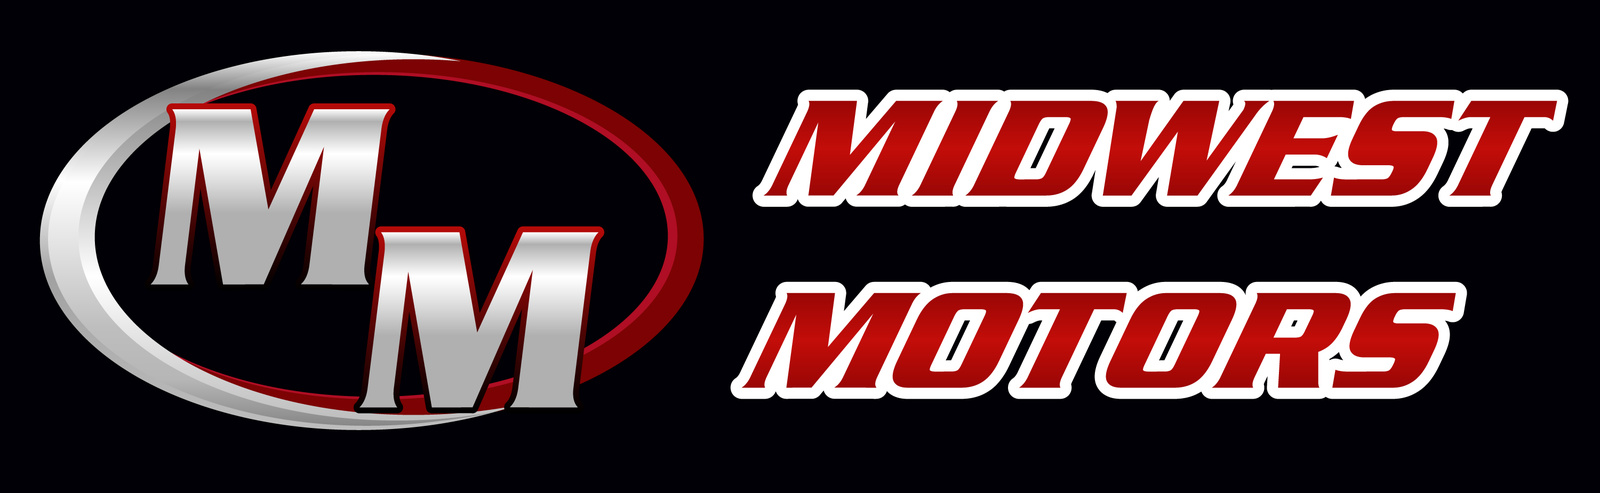 Gmc Dealers Indianapolis >> Midwest Motors - Indianapolis, IN: Read Consumer reviews ...